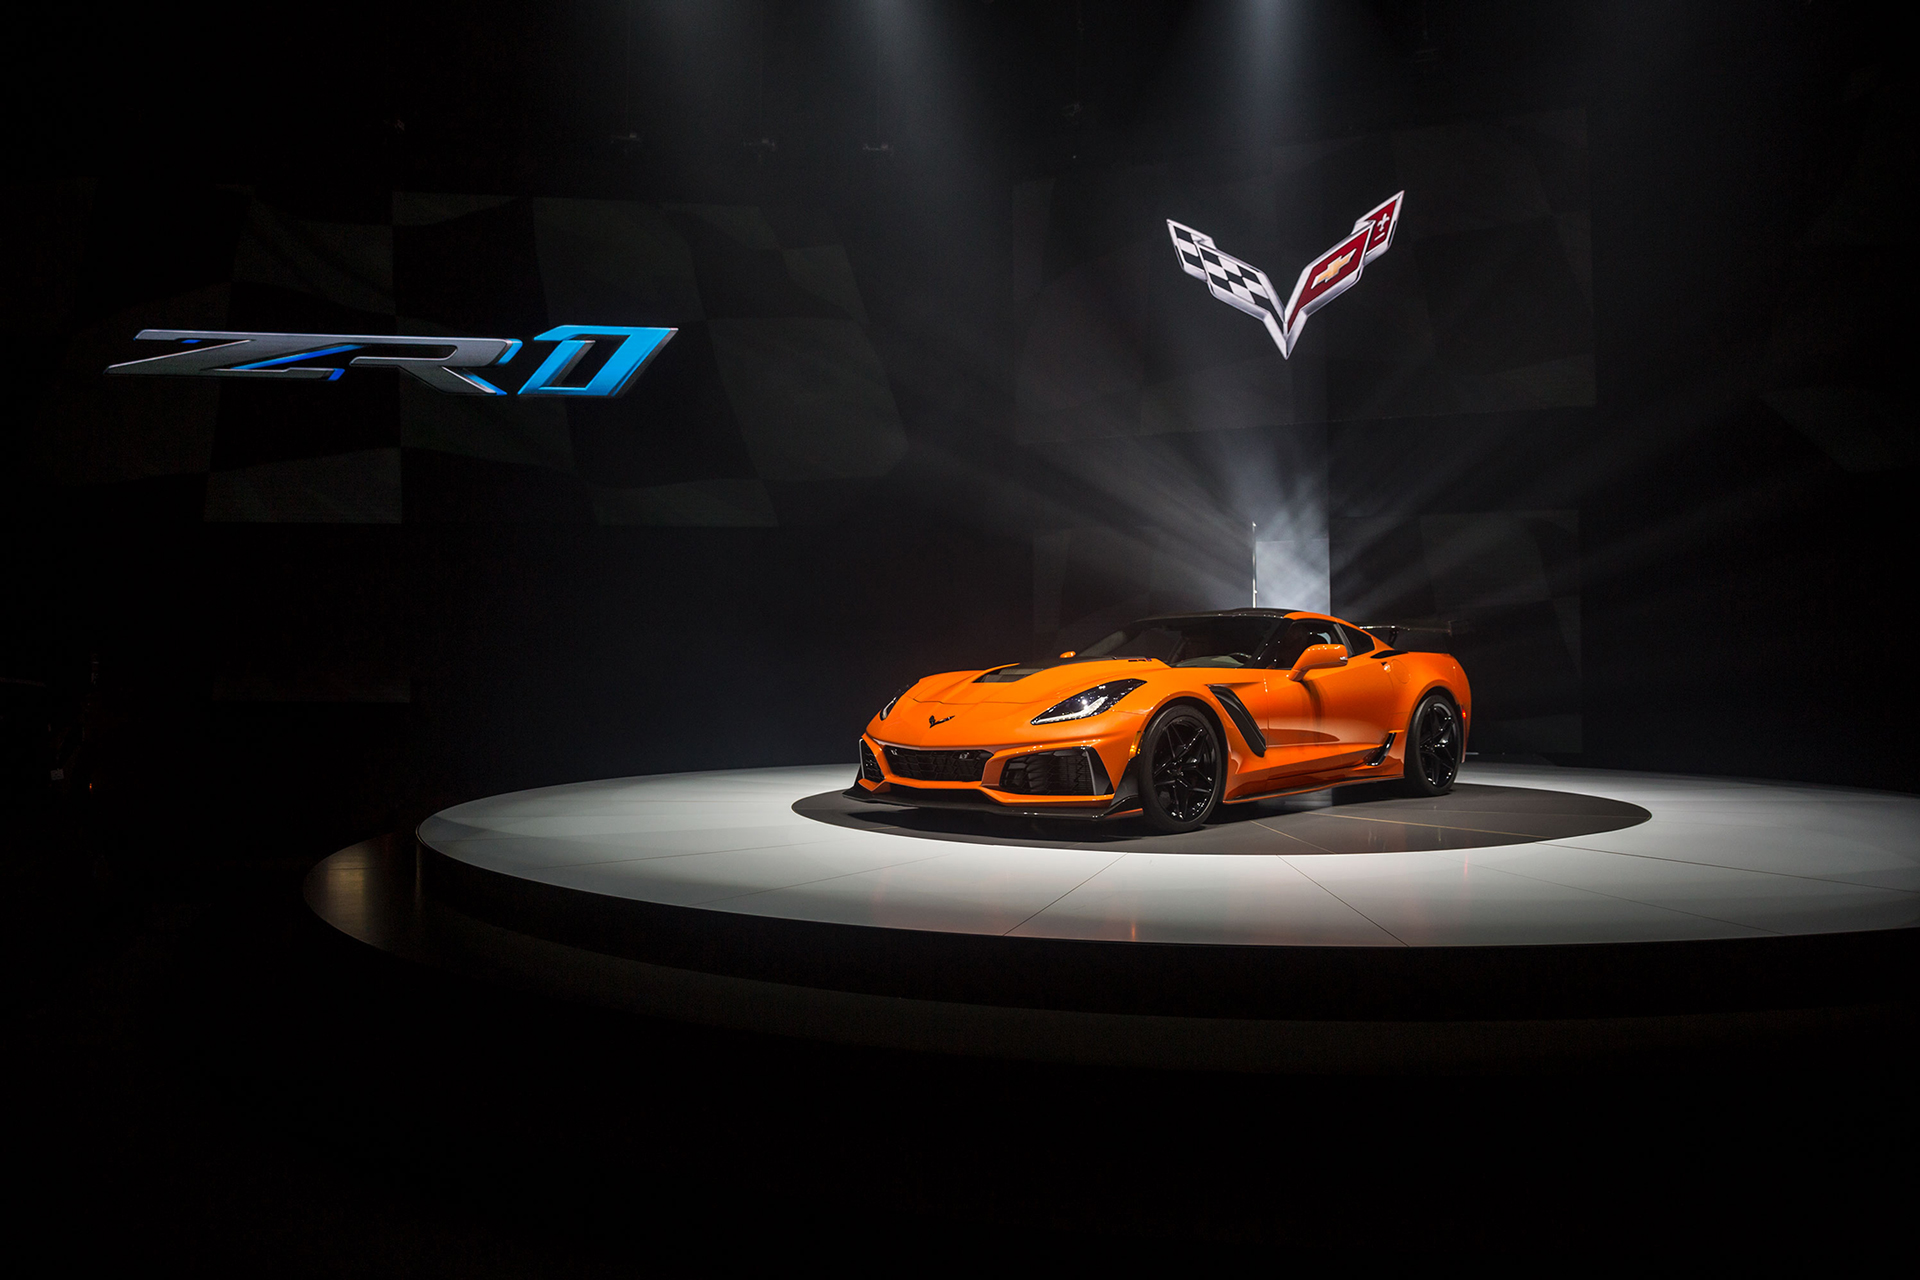 Chevrolet Corvette ZR1- 2019 - front / avant - Sebring Orange - 2017 World Premiere